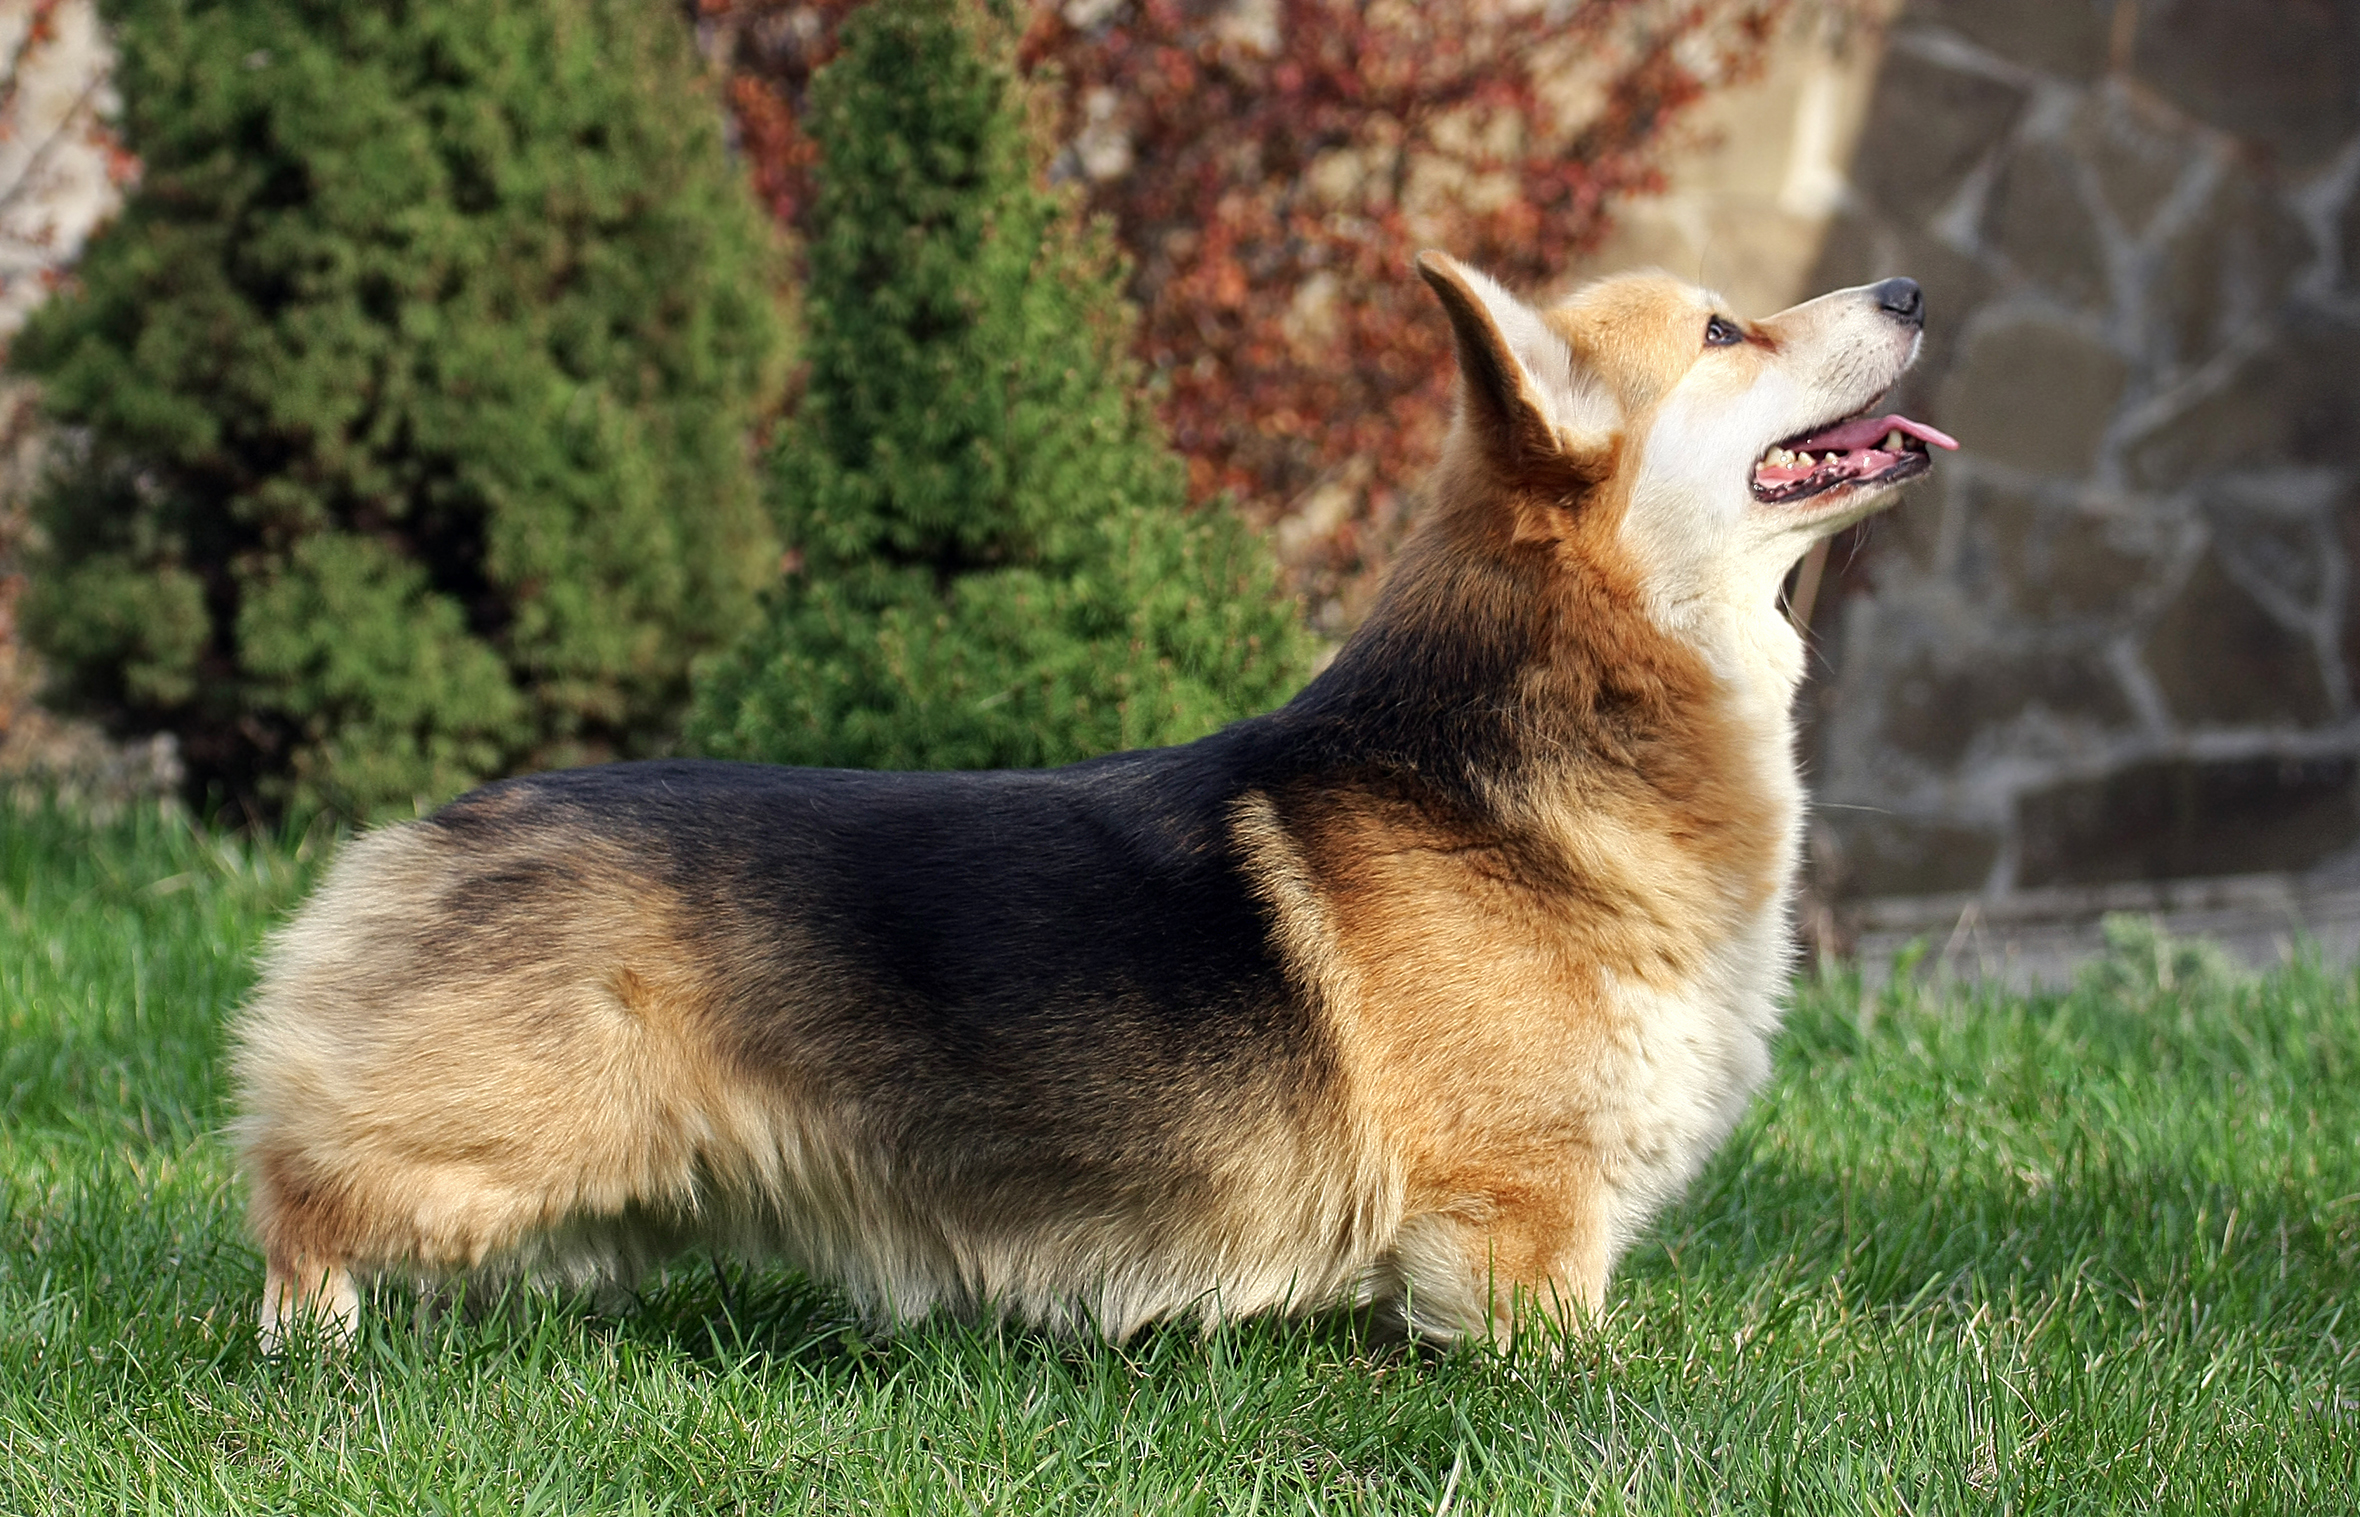 The T gene affects tail length with harmful effects in dogs. Image: Marsiyanka, Wiki.